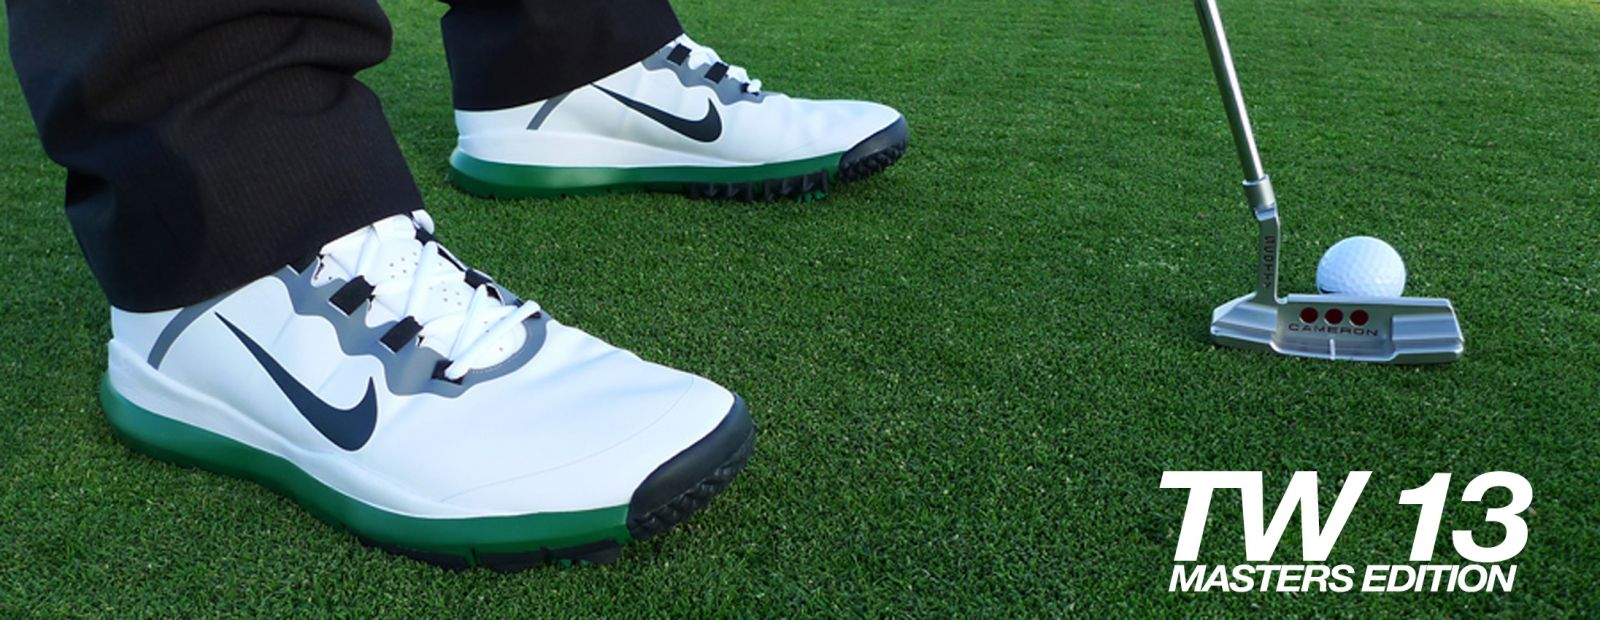 A closer look at Tiger Woods s signature golf shoe in a limited edition  colorway. 8ca54d488989